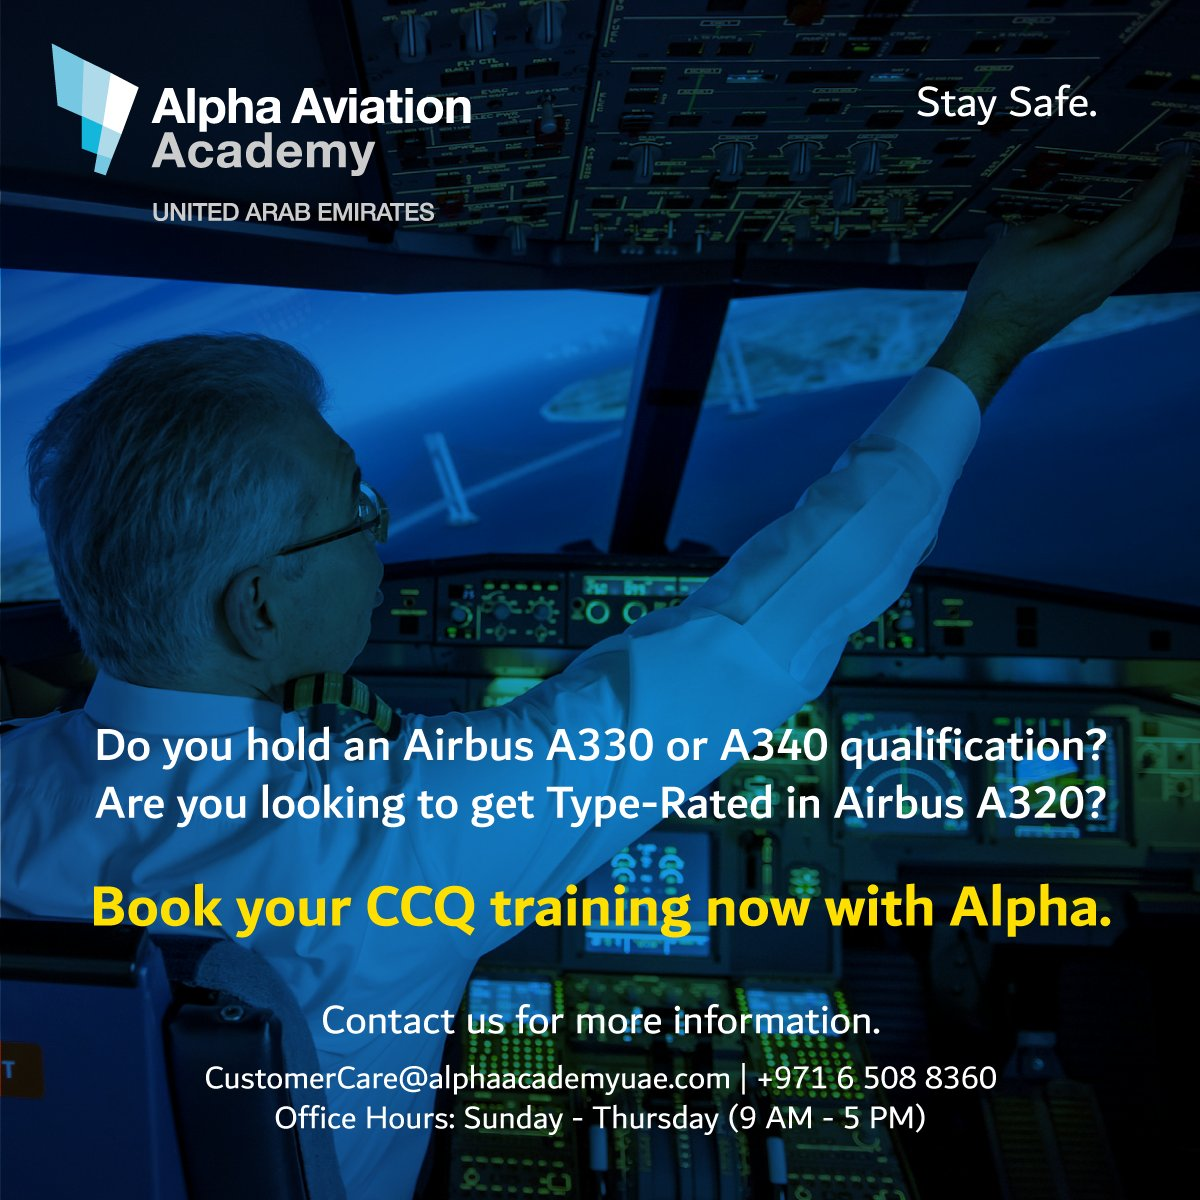 Book your CCQ training with Alpha. Contact our team for more information.  E-mail: CustomerCare@alphaacademyuae.com Tel.: +971 6 508 8360  Office Hours: Sunday - Thursday (9:00 AM - 5:00 PM) #pilotlicense #revalidation #renewal #pilotproficiency #pilotcurrency #aviation